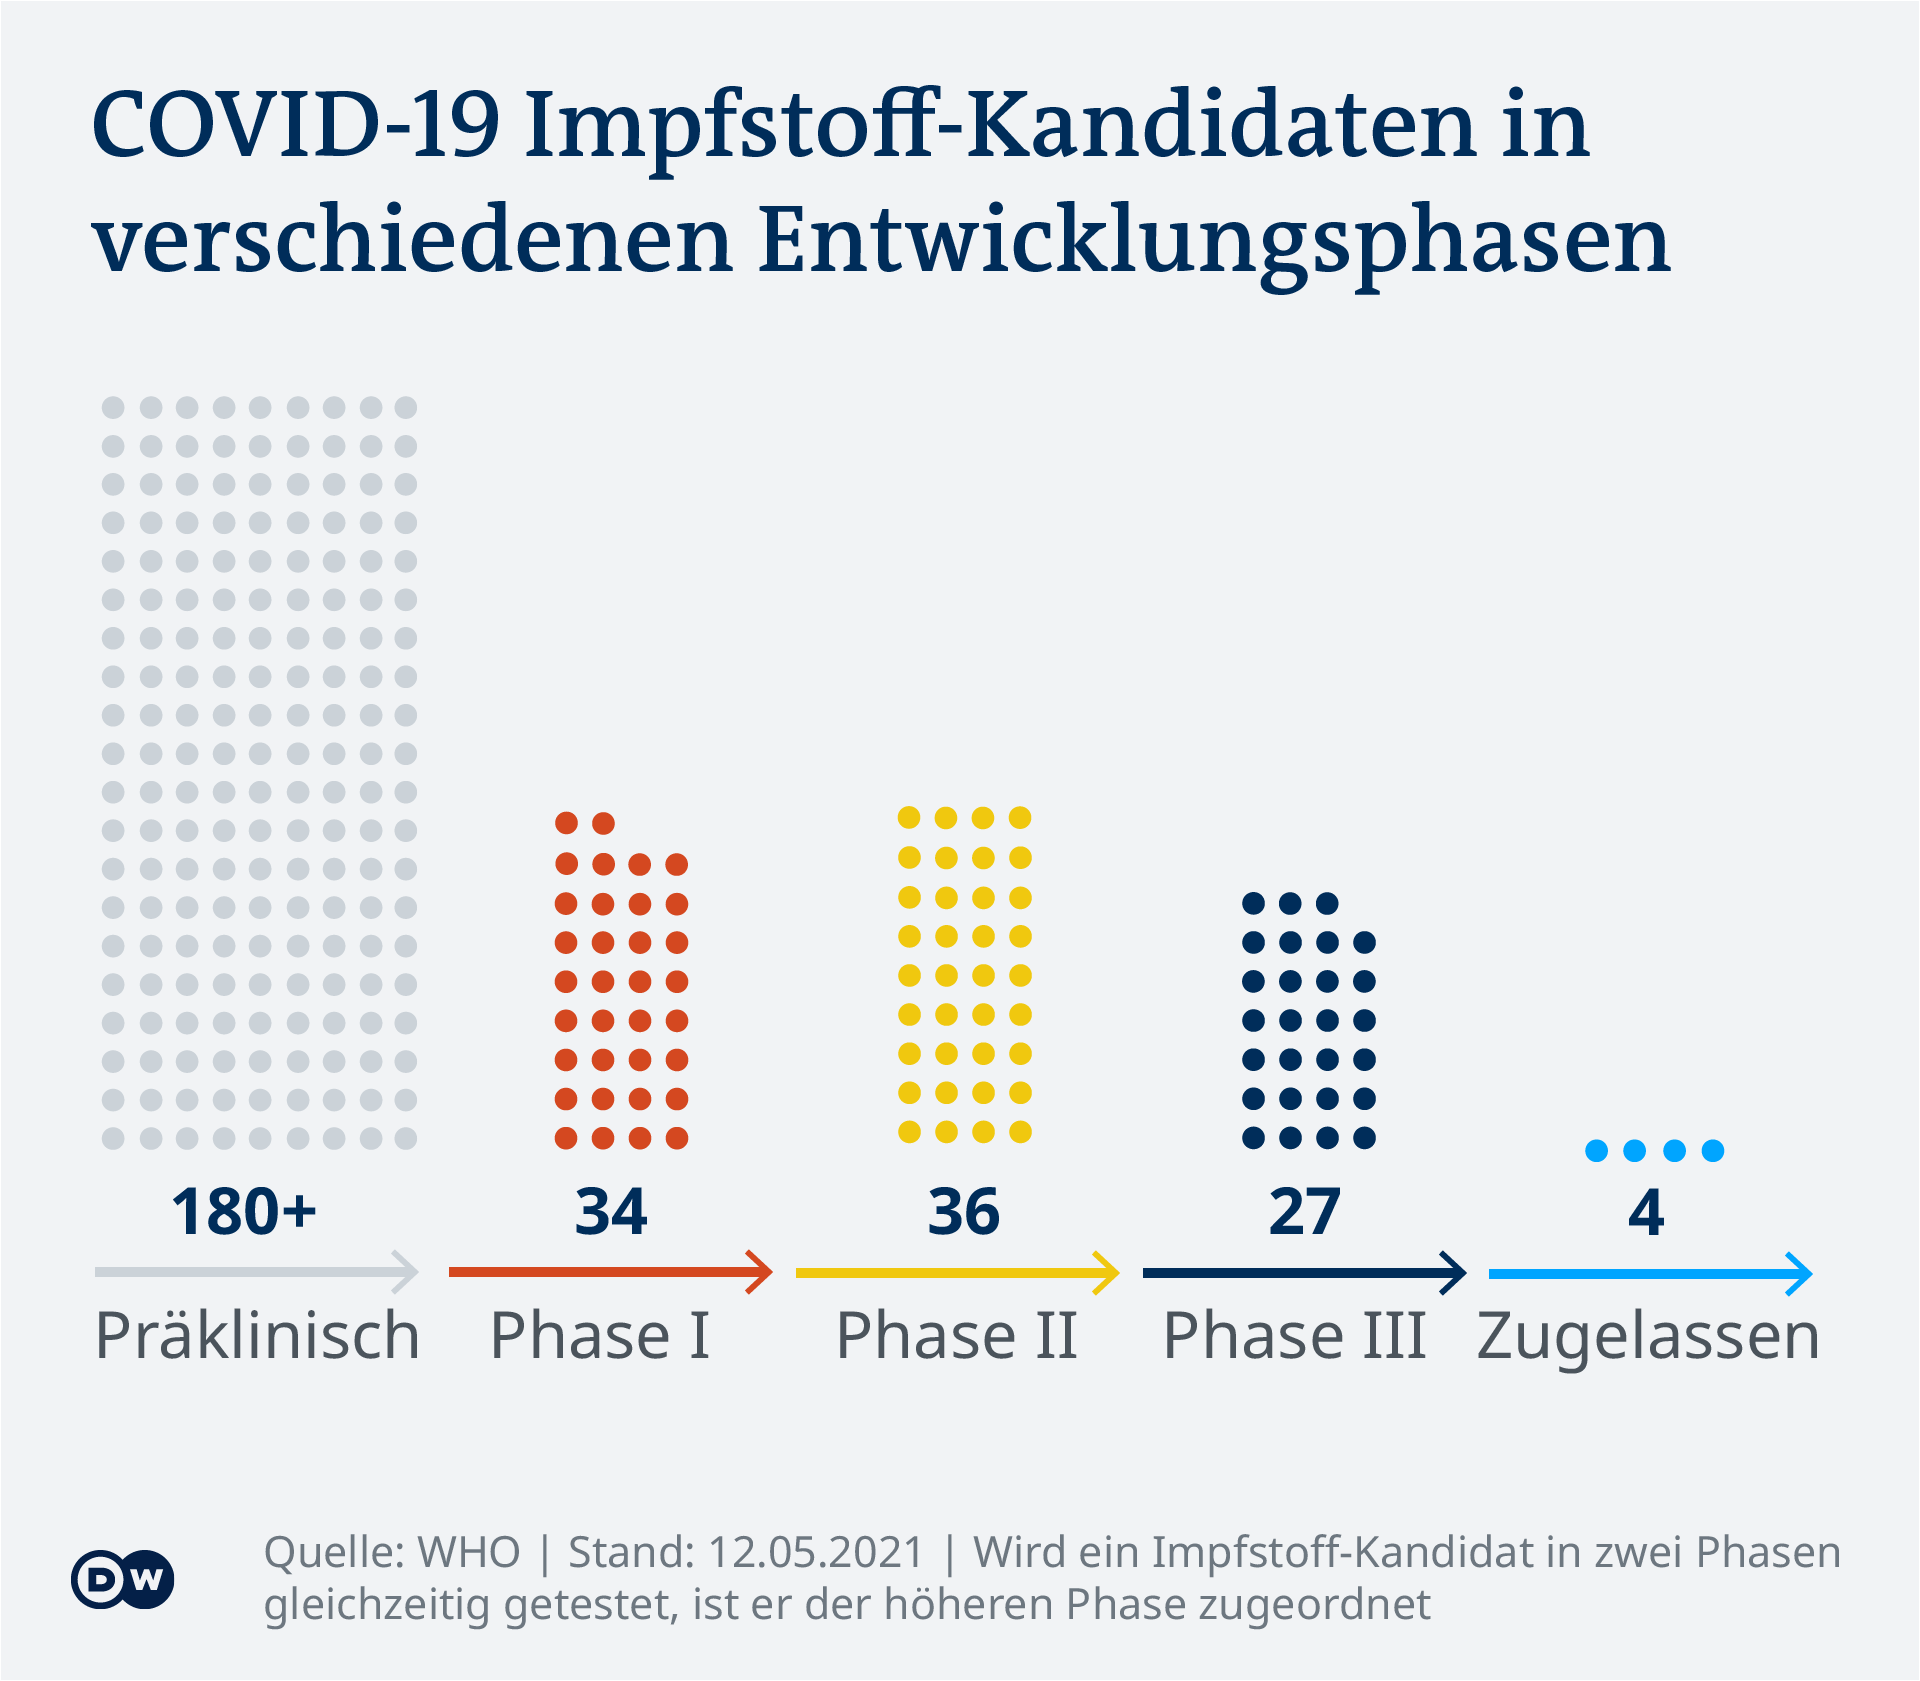 Data visualization - COVID-19 vaccine tracker - Phases - Update May 12, 2021 - German